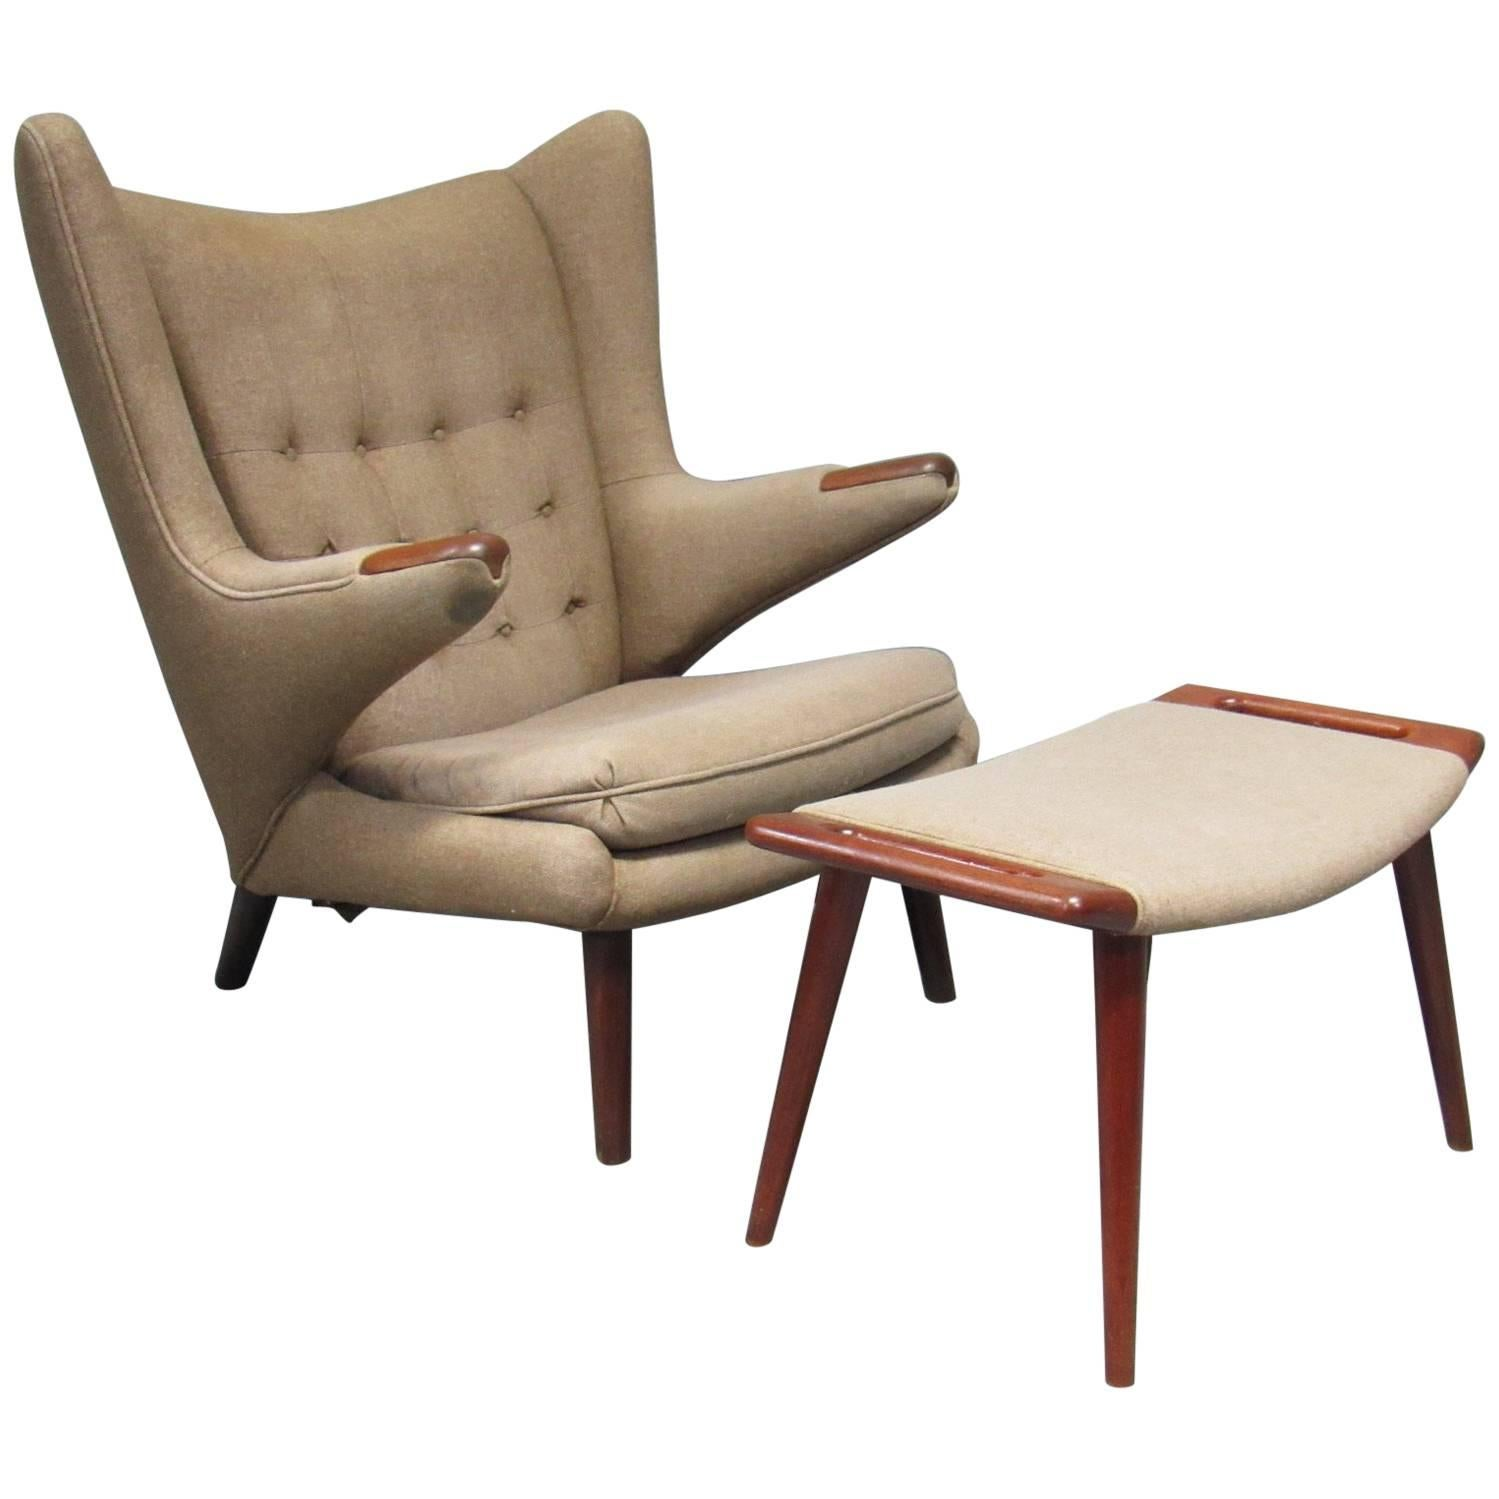 1950s Papa Bear Chair And Ottoman Model AP 19 By Hans Wegner For AP Stolen